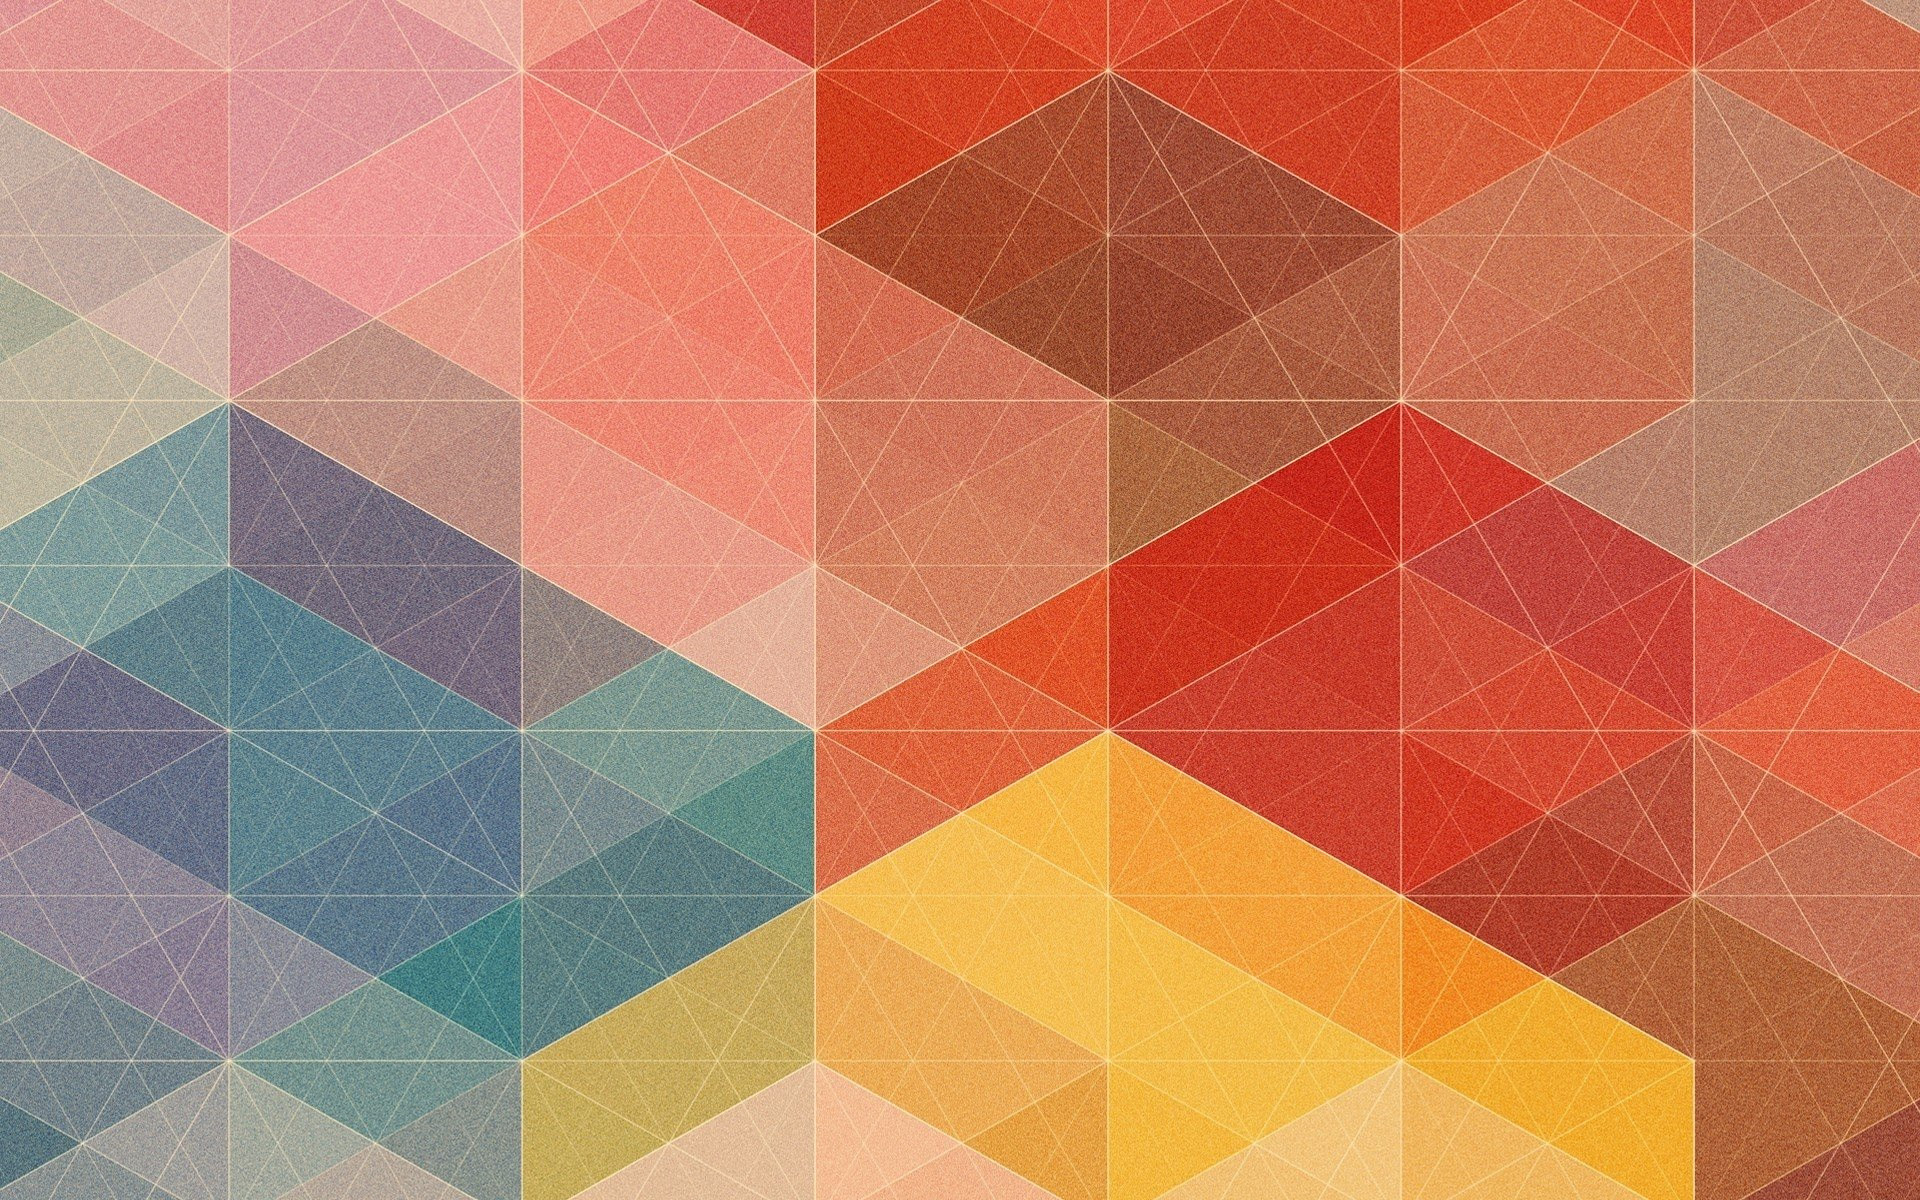 50 rich and colorful geometric wallpapers for your mobile devices HD and QHD resolution